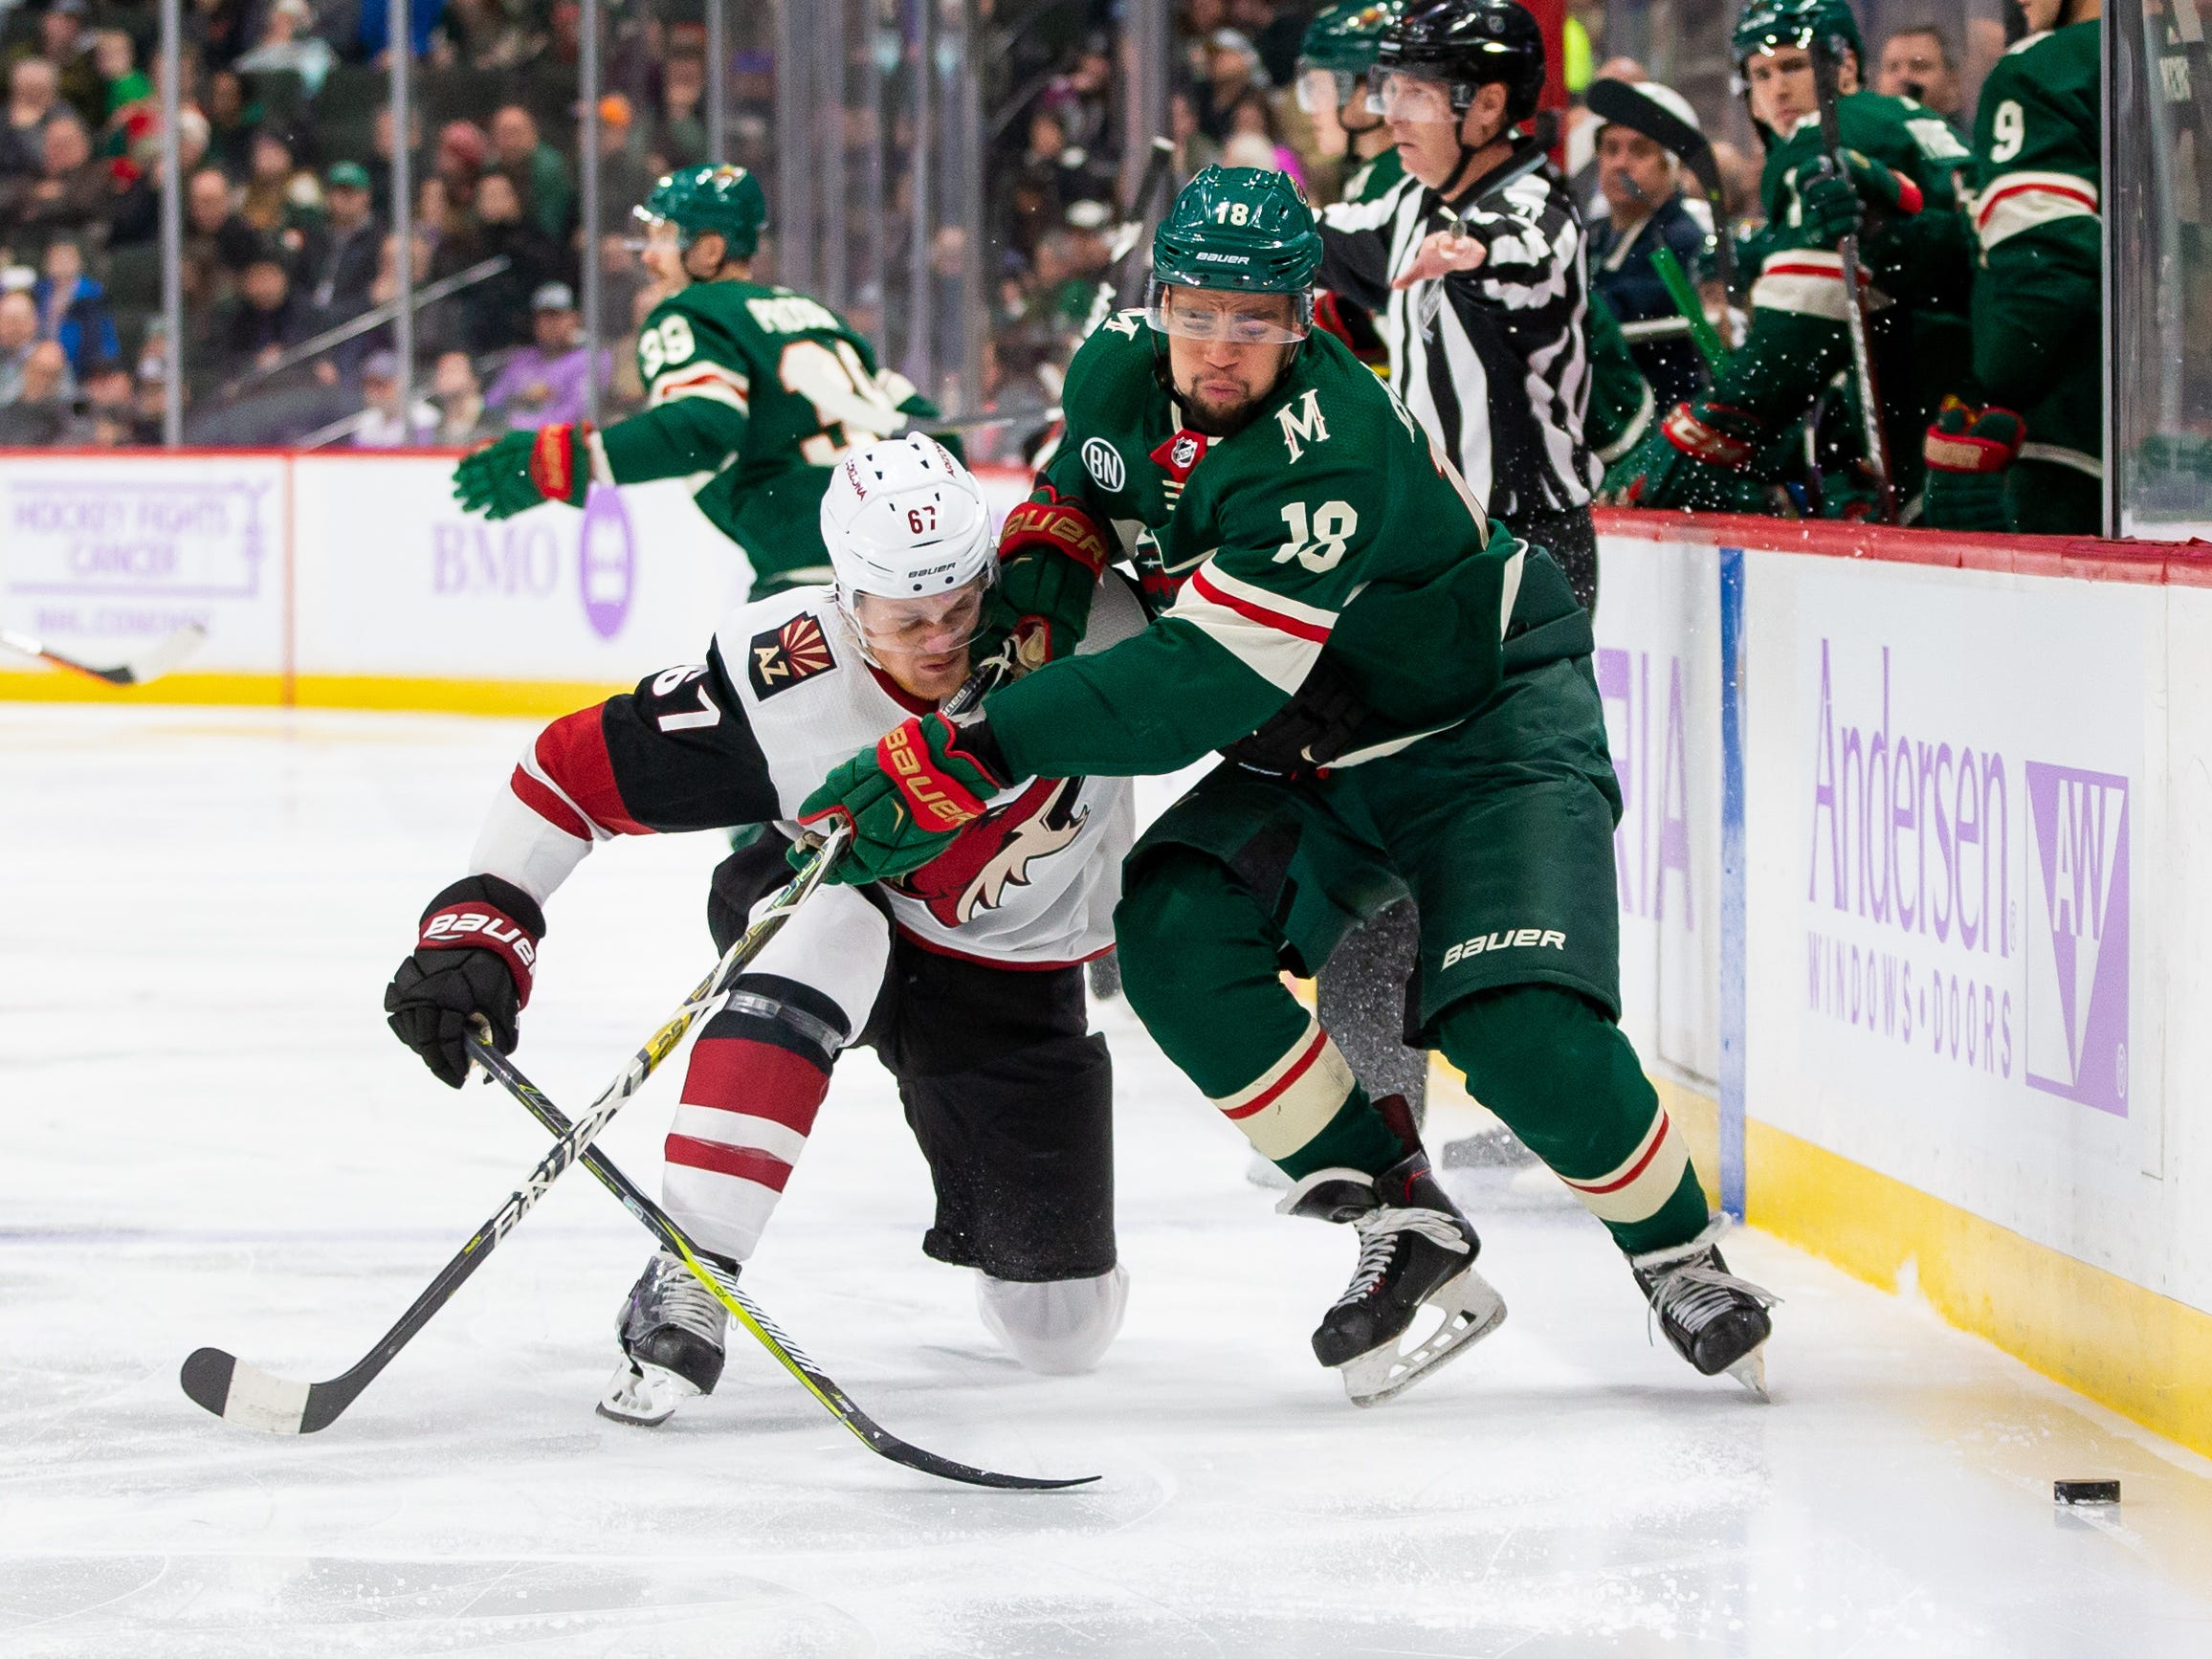 Nov 27, 2018; Saint Paul, MN, USA; Phoenix Coyotes forward Lawson Crouse (67) and Minnesota Wild forward Jordan Greenway (18) skate after the puck in the second period at Xcel Energy Center. Mandatory Credit: Brad Rempel-USA TODAY Sports